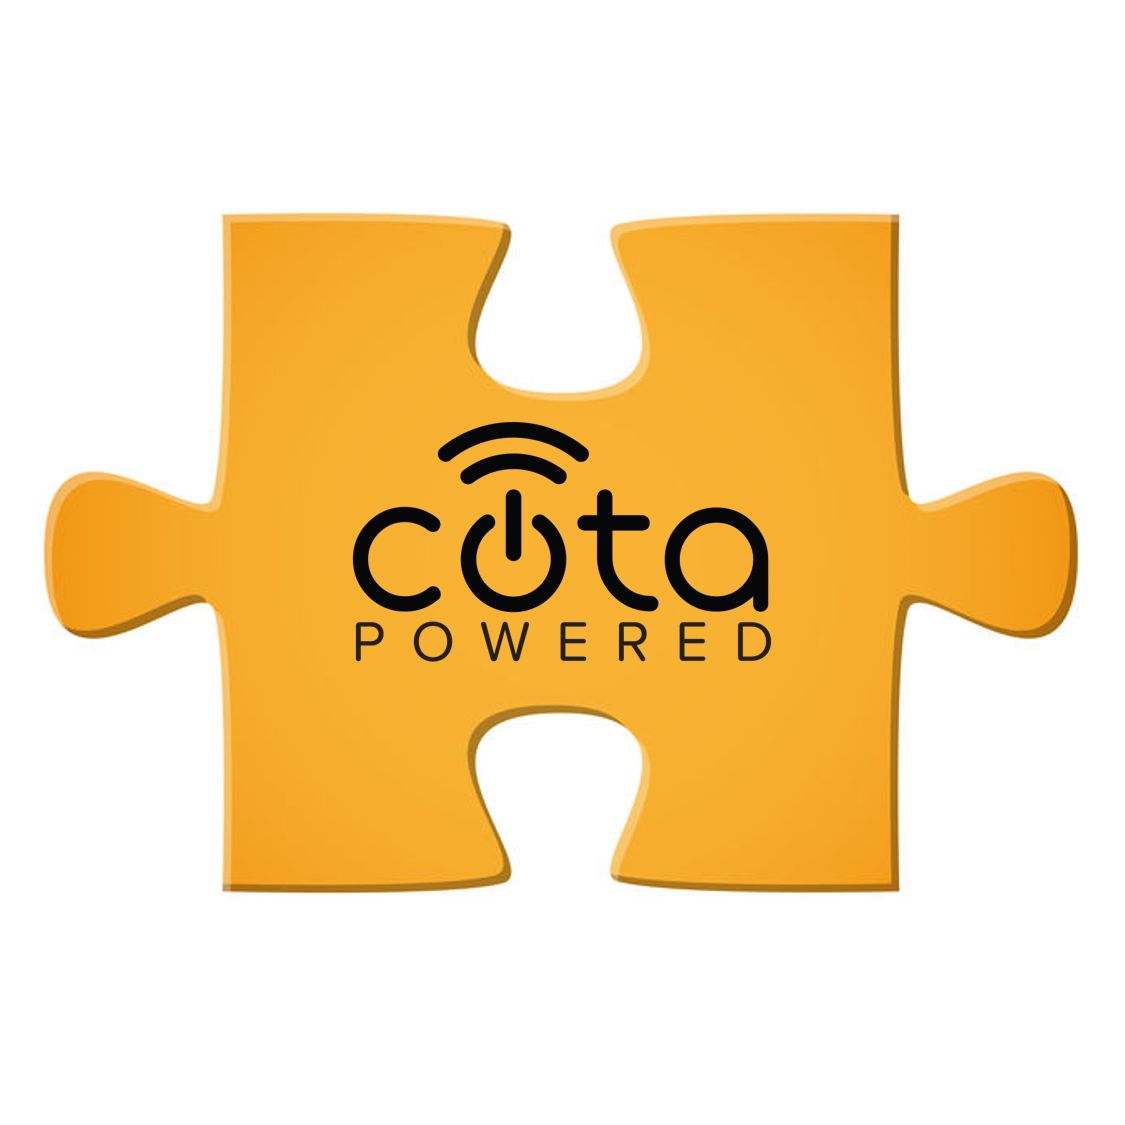 Cota is the last piece of the puzzle for real wireless IoT!